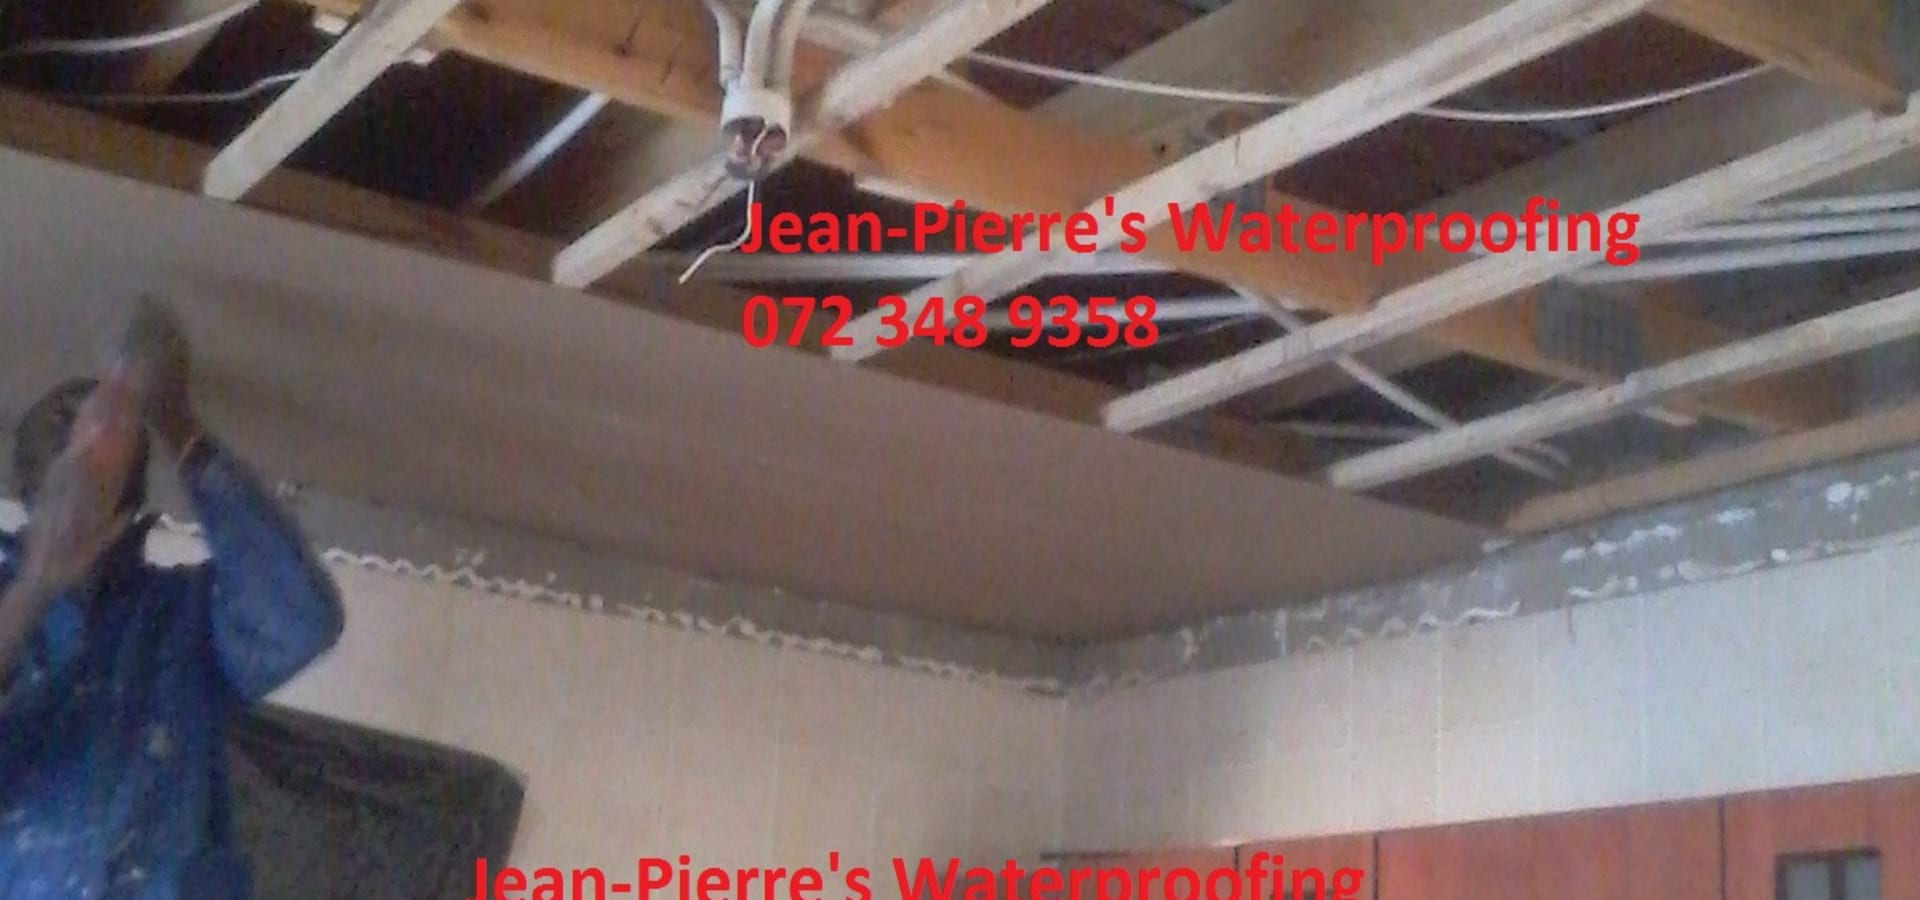 Jean-Pierre's Waterproofing